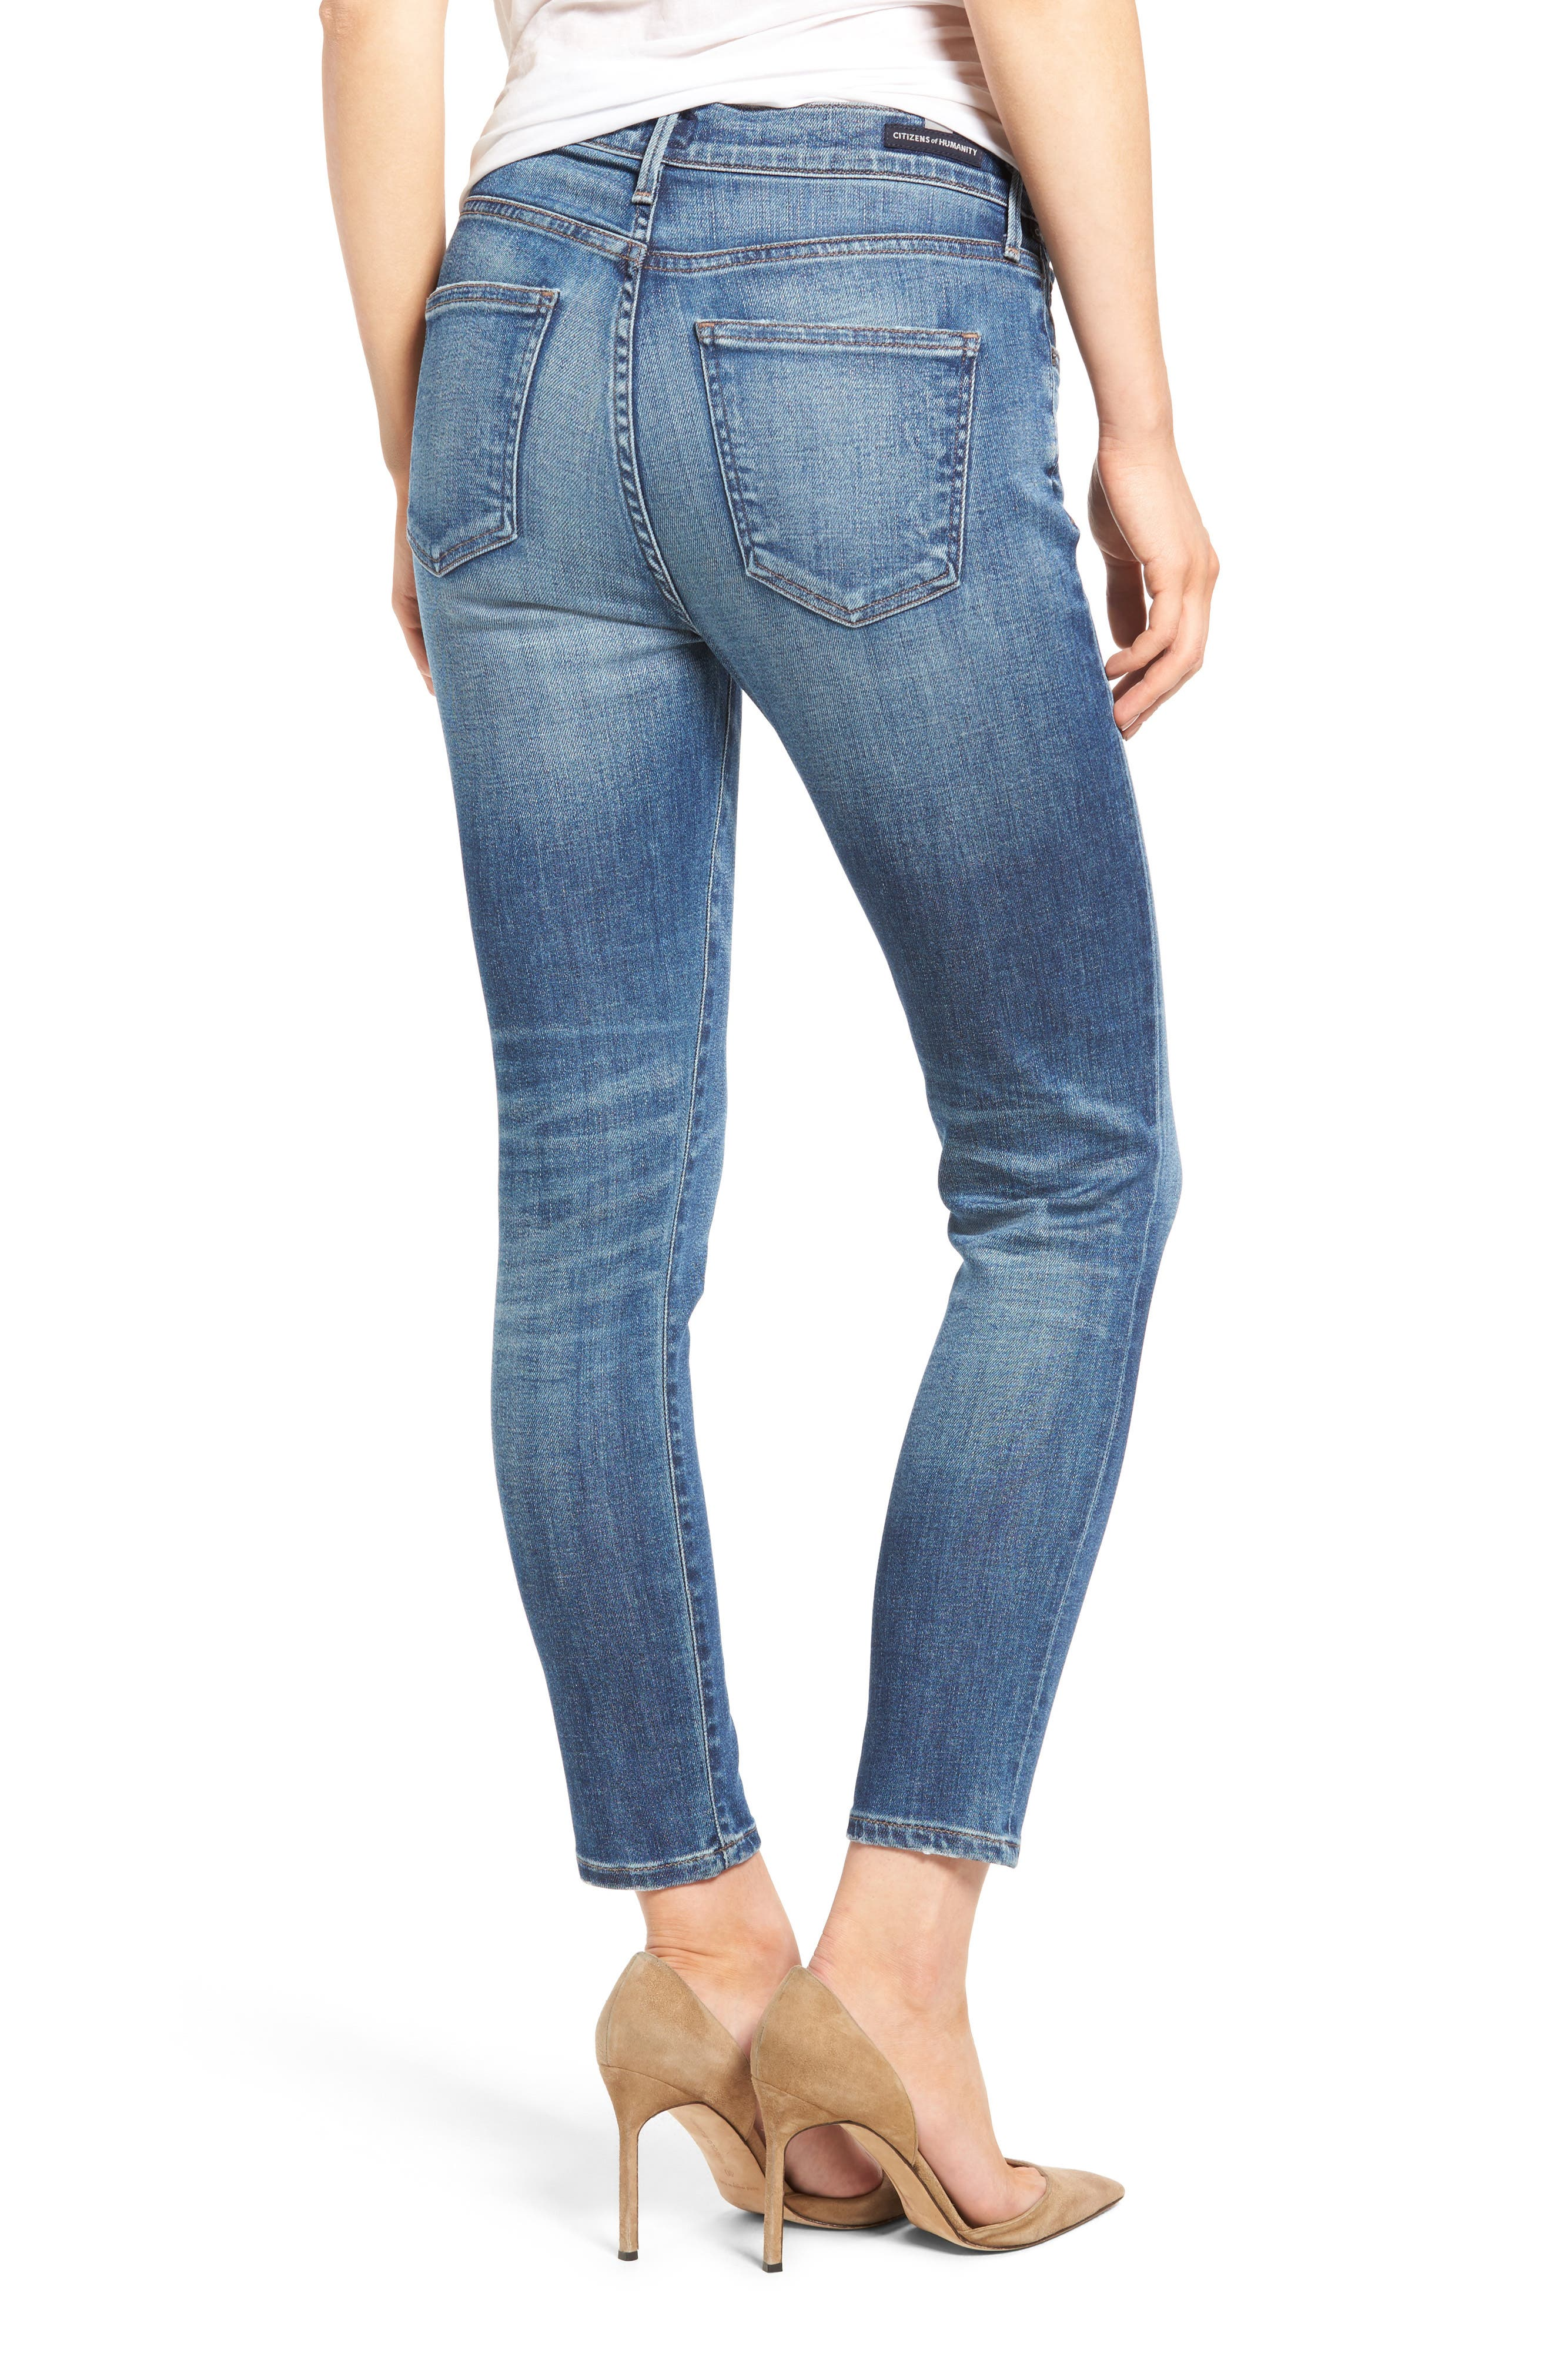 Rocket High Waist Crop Skinny Jeans,                             Alternate thumbnail 2, color,                             409